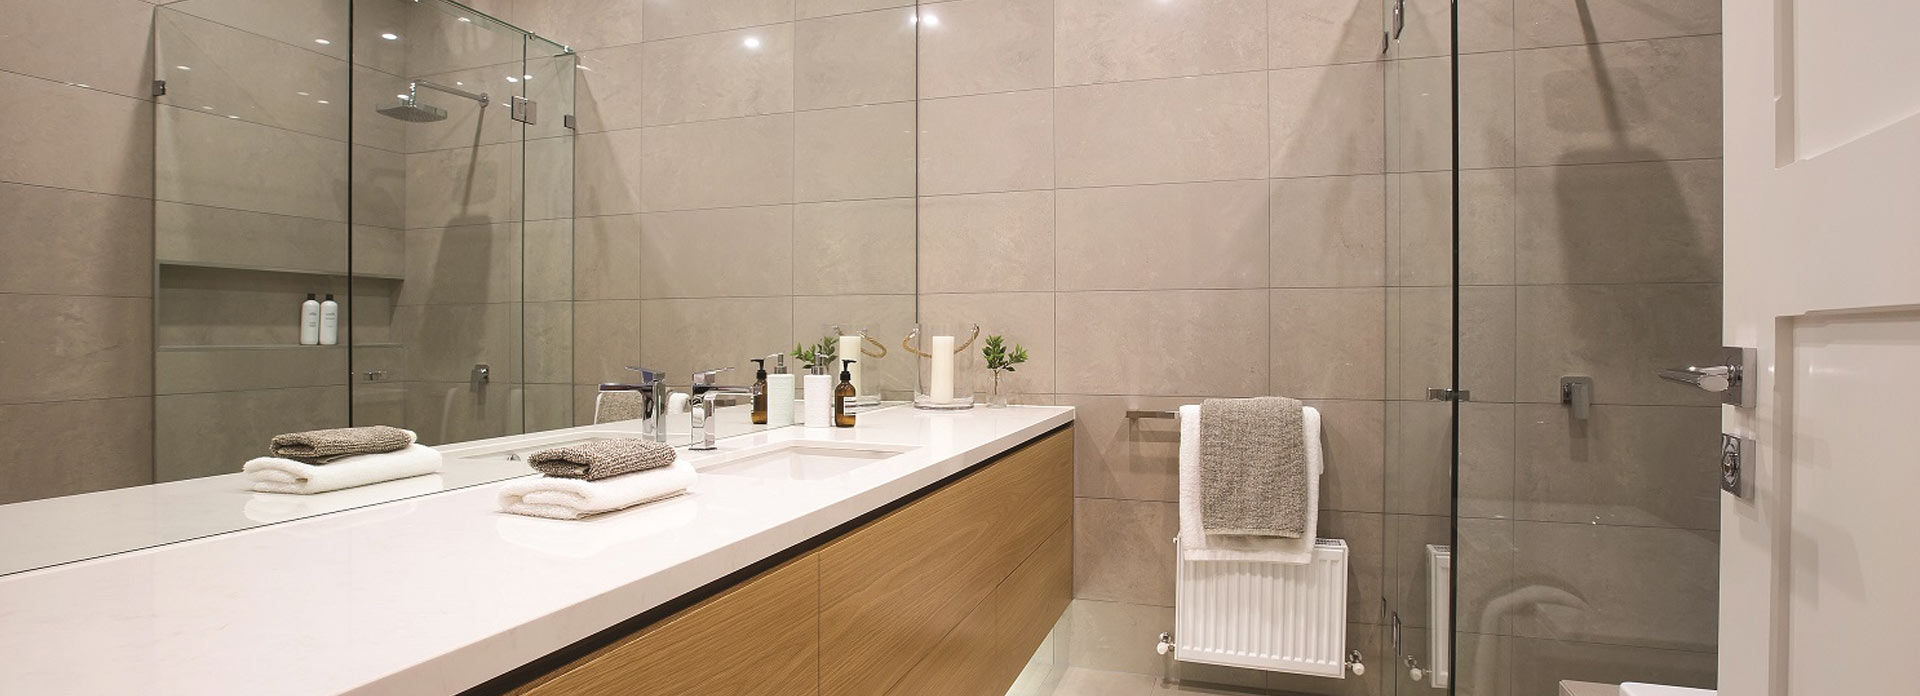 Frameless Shower Screens Broadmeadows